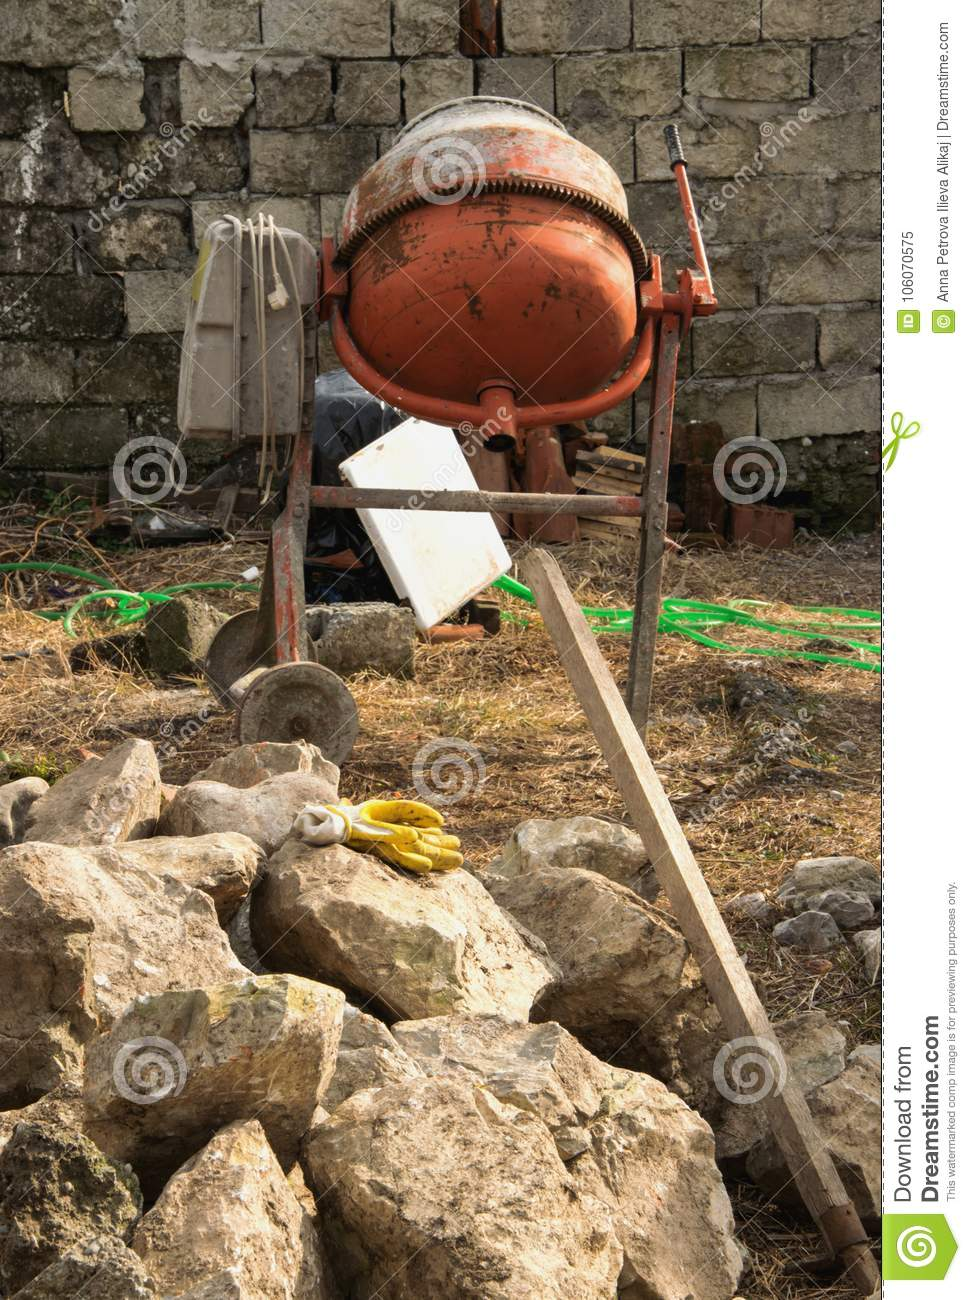 Work in the construction site with the cement mixer